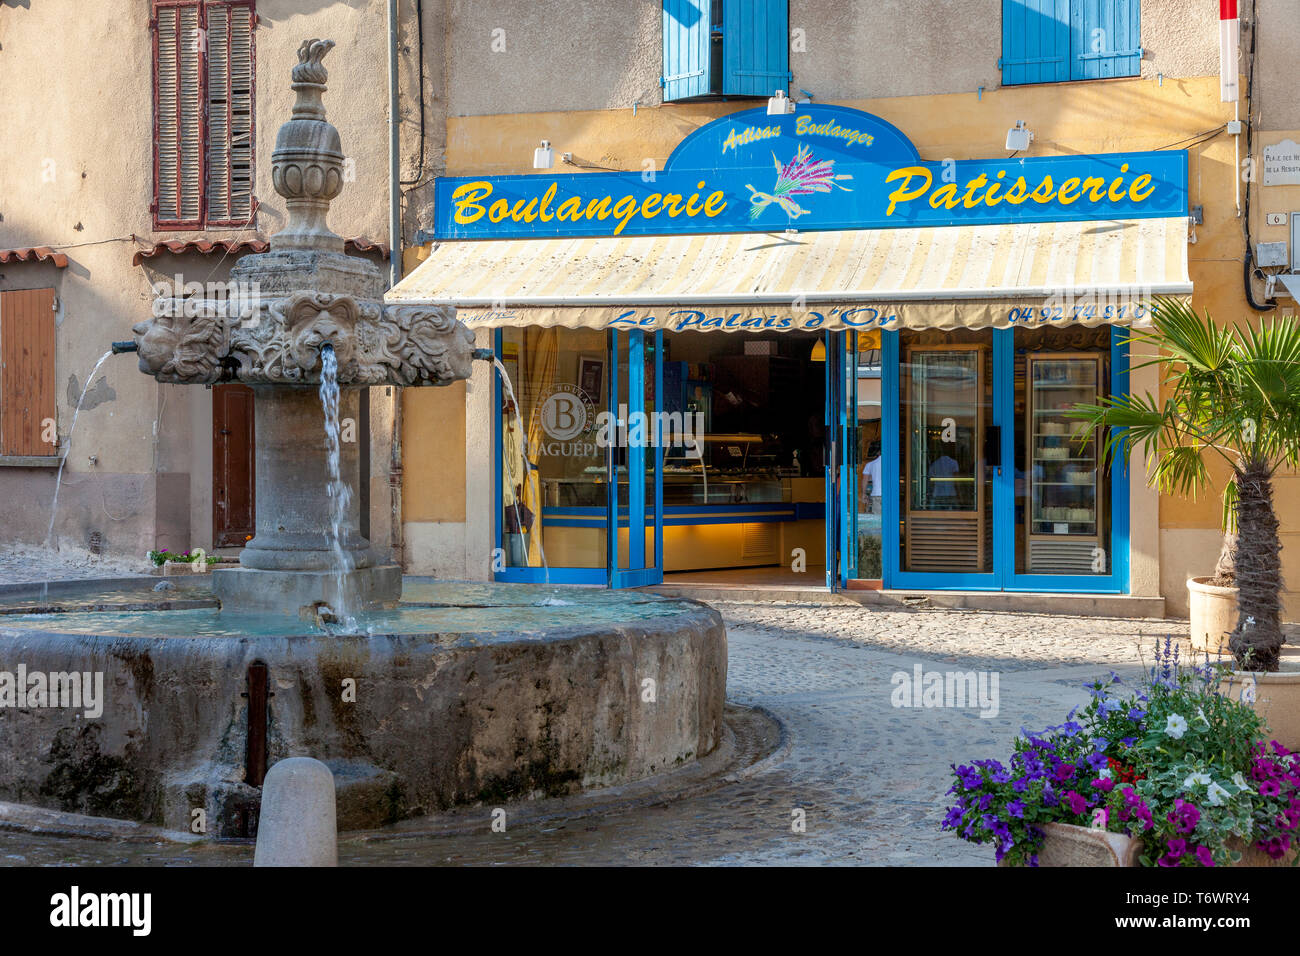 Fountain in courtyad in front of Le Palais d'Or - an Artisan Boulangerie, Valensole, Provence, France - Stock Image